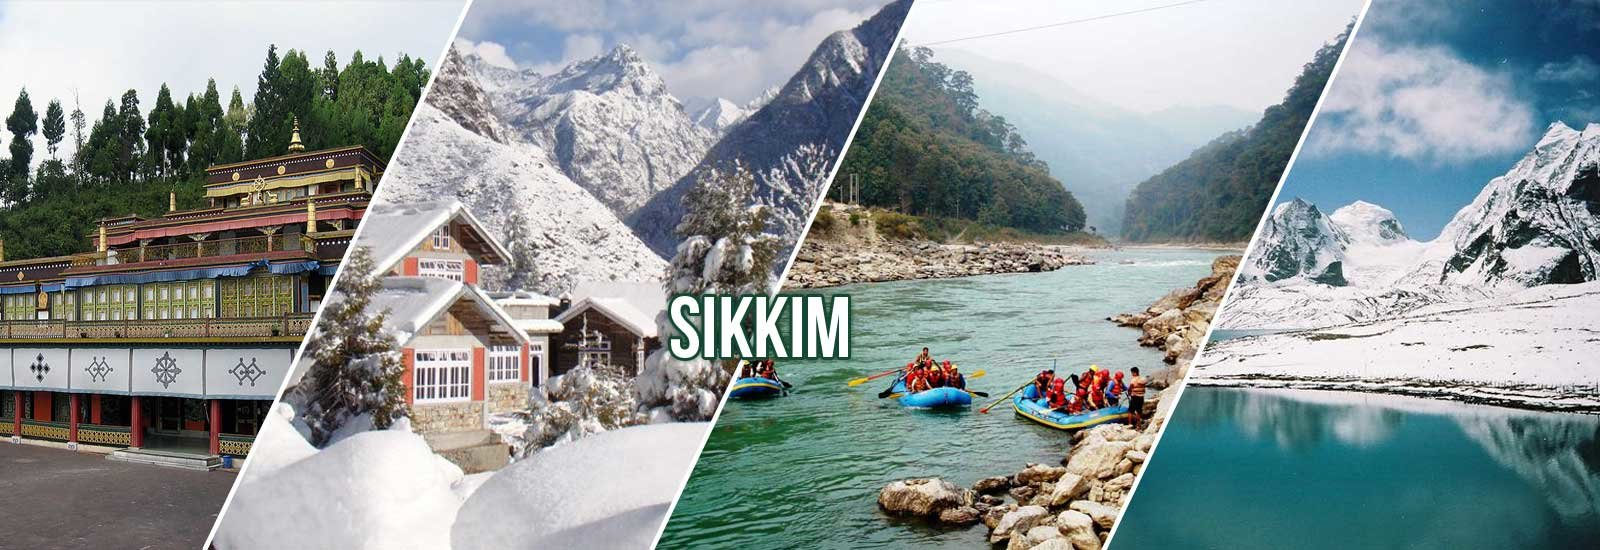 Sikkim and West Bengal Holidays - Collection